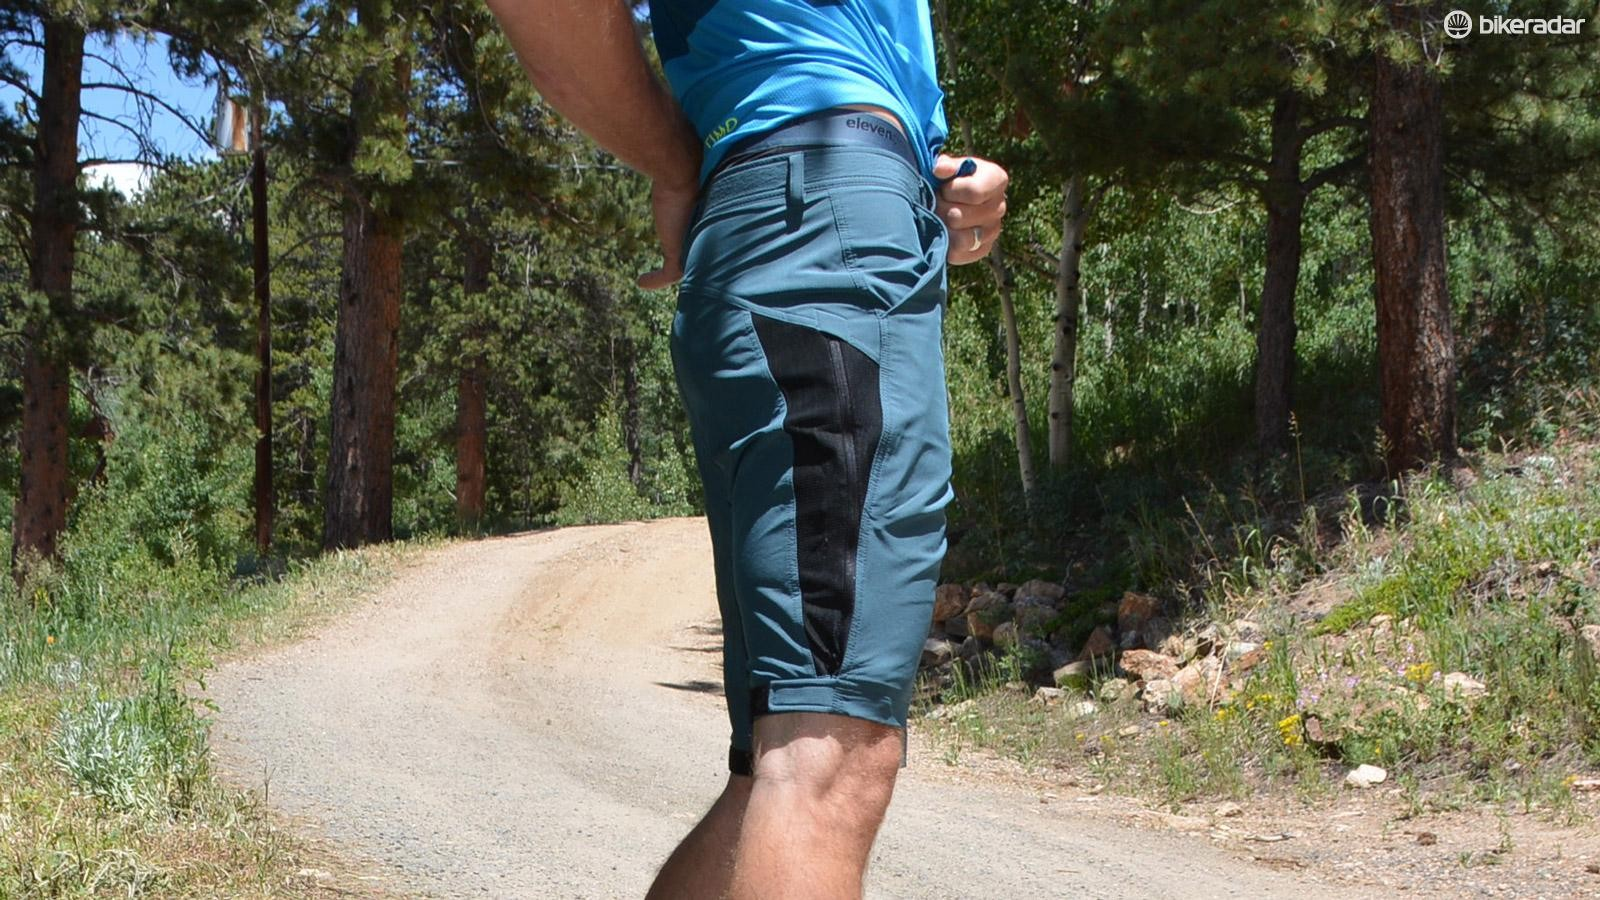 Zipped down, the legs are form fitting and similar in look and function to spandex